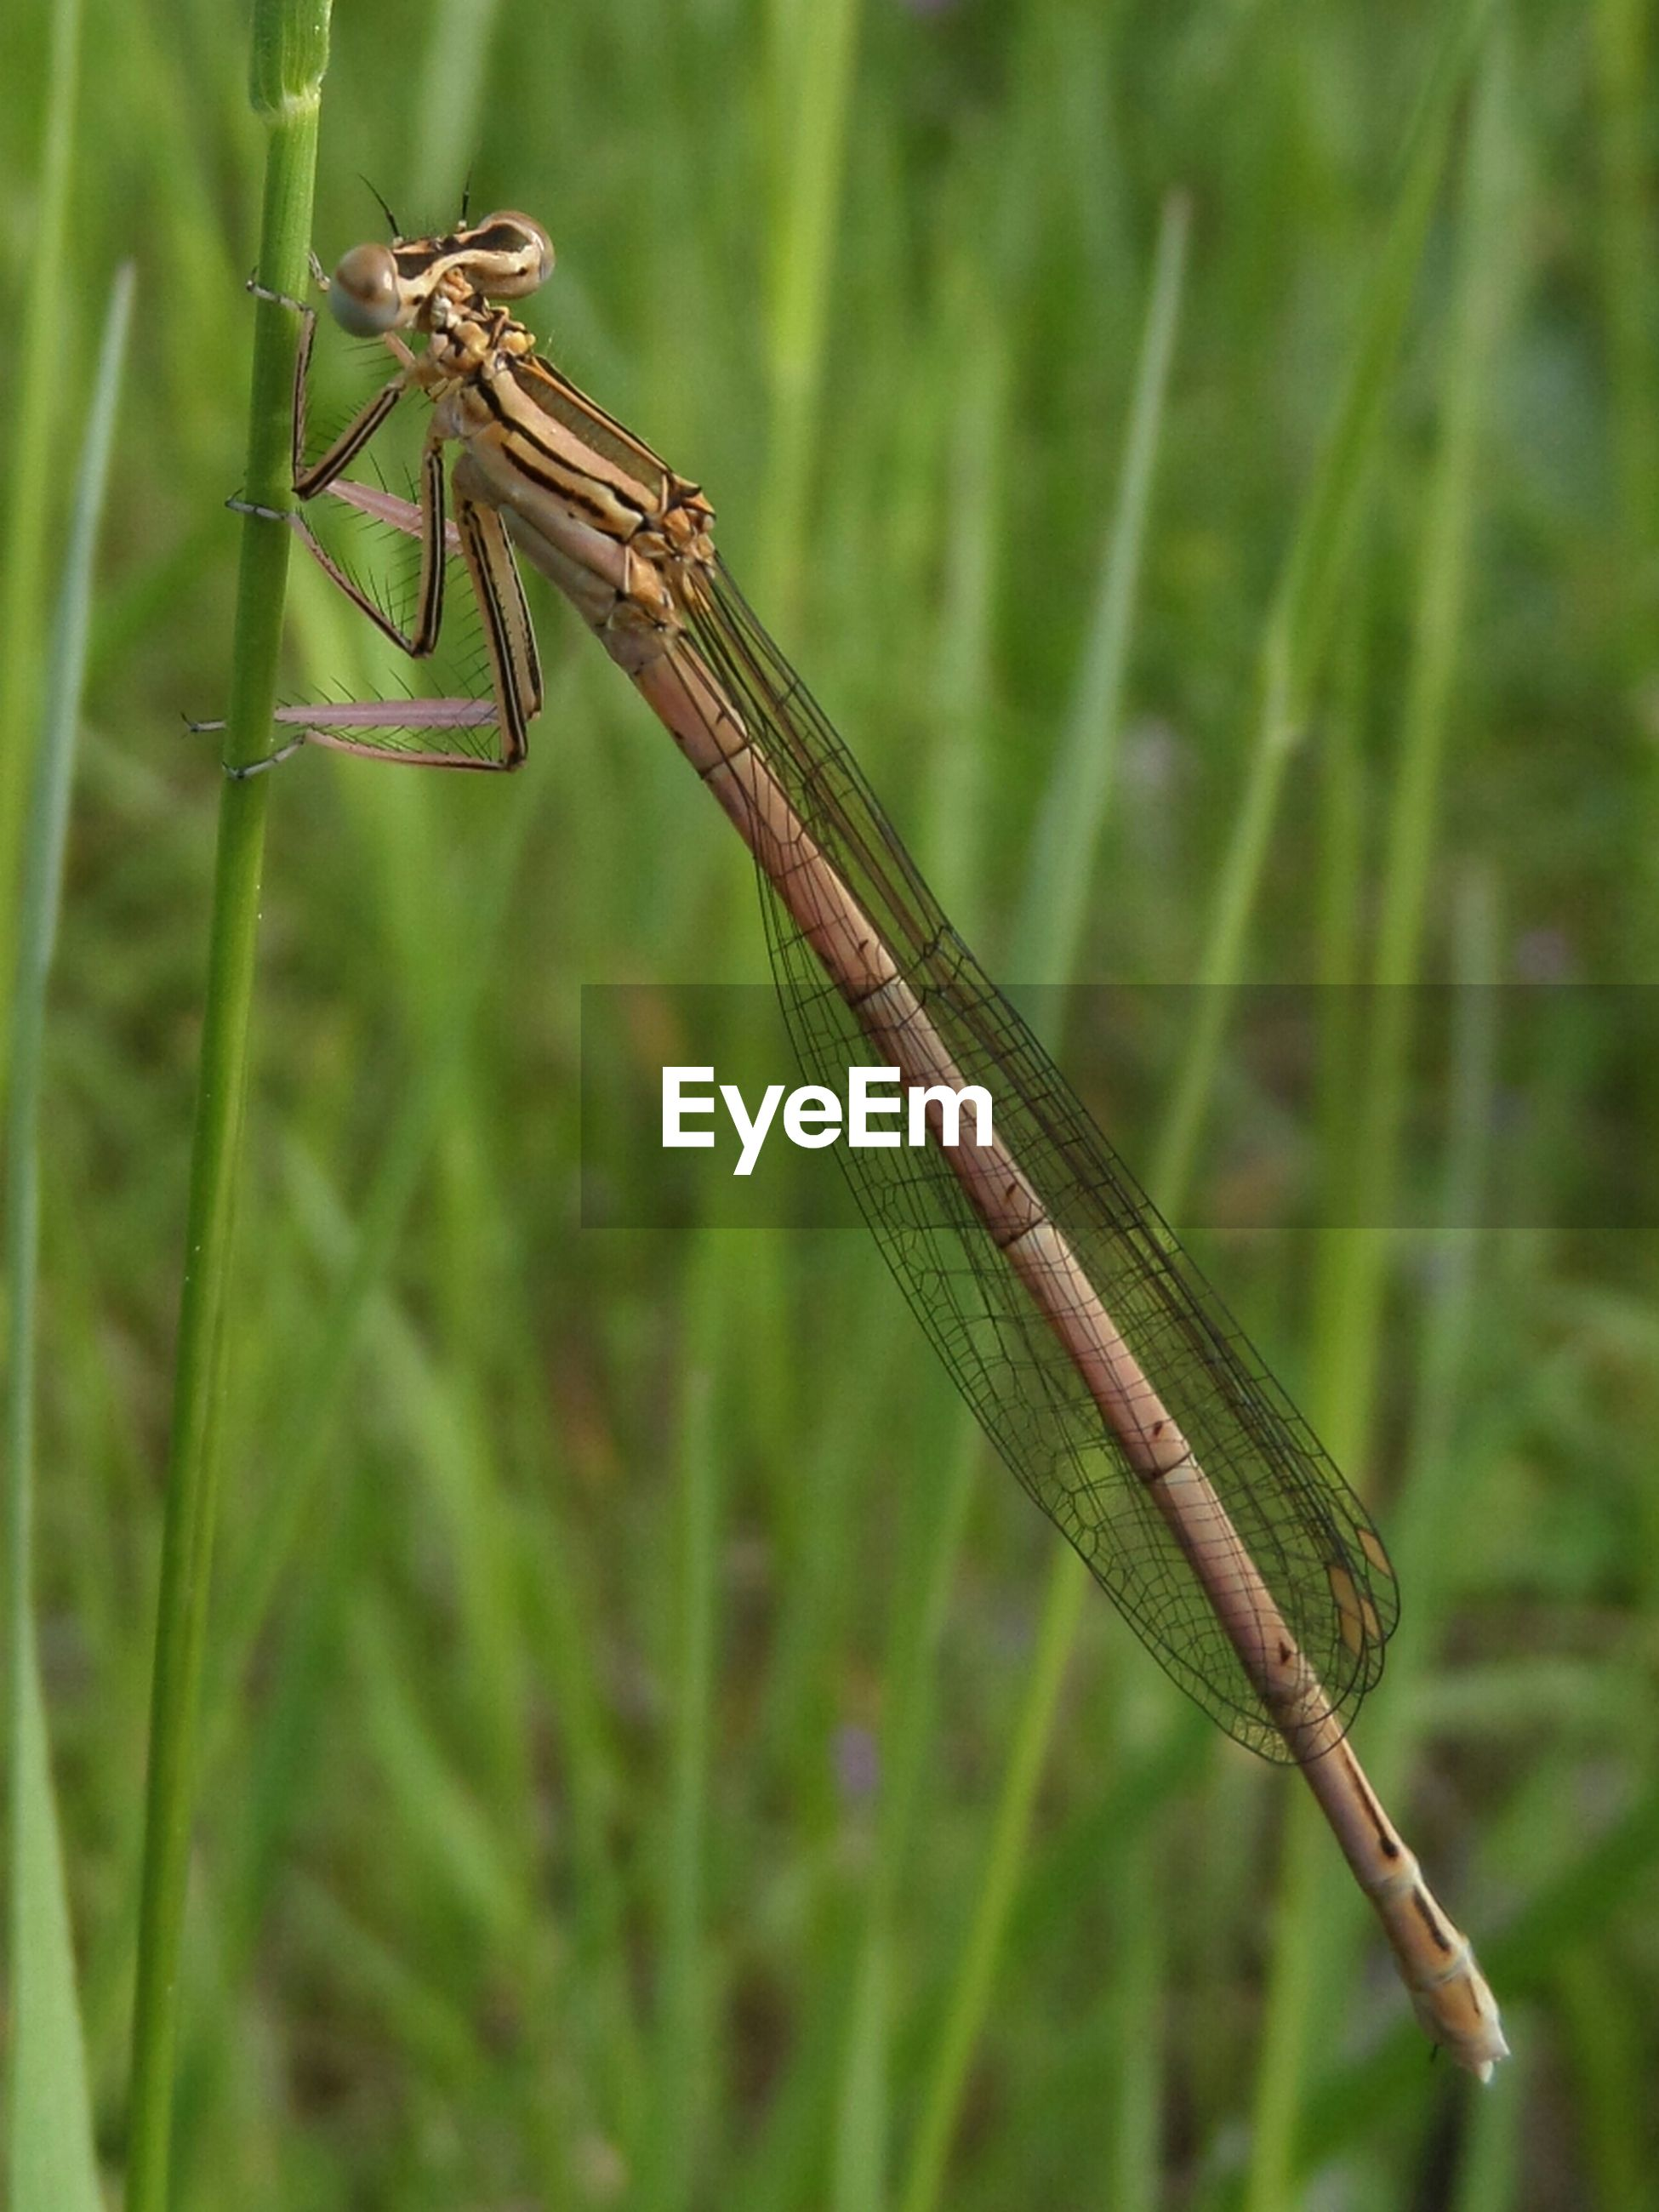 animals in the wild, animal themes, one animal, insect, wildlife, focus on foreground, dragonfly, close-up, animal wing, plant, nature, day, full length, outdoors, green color, beauty in nature, zoology, selective focus, no people, two animals